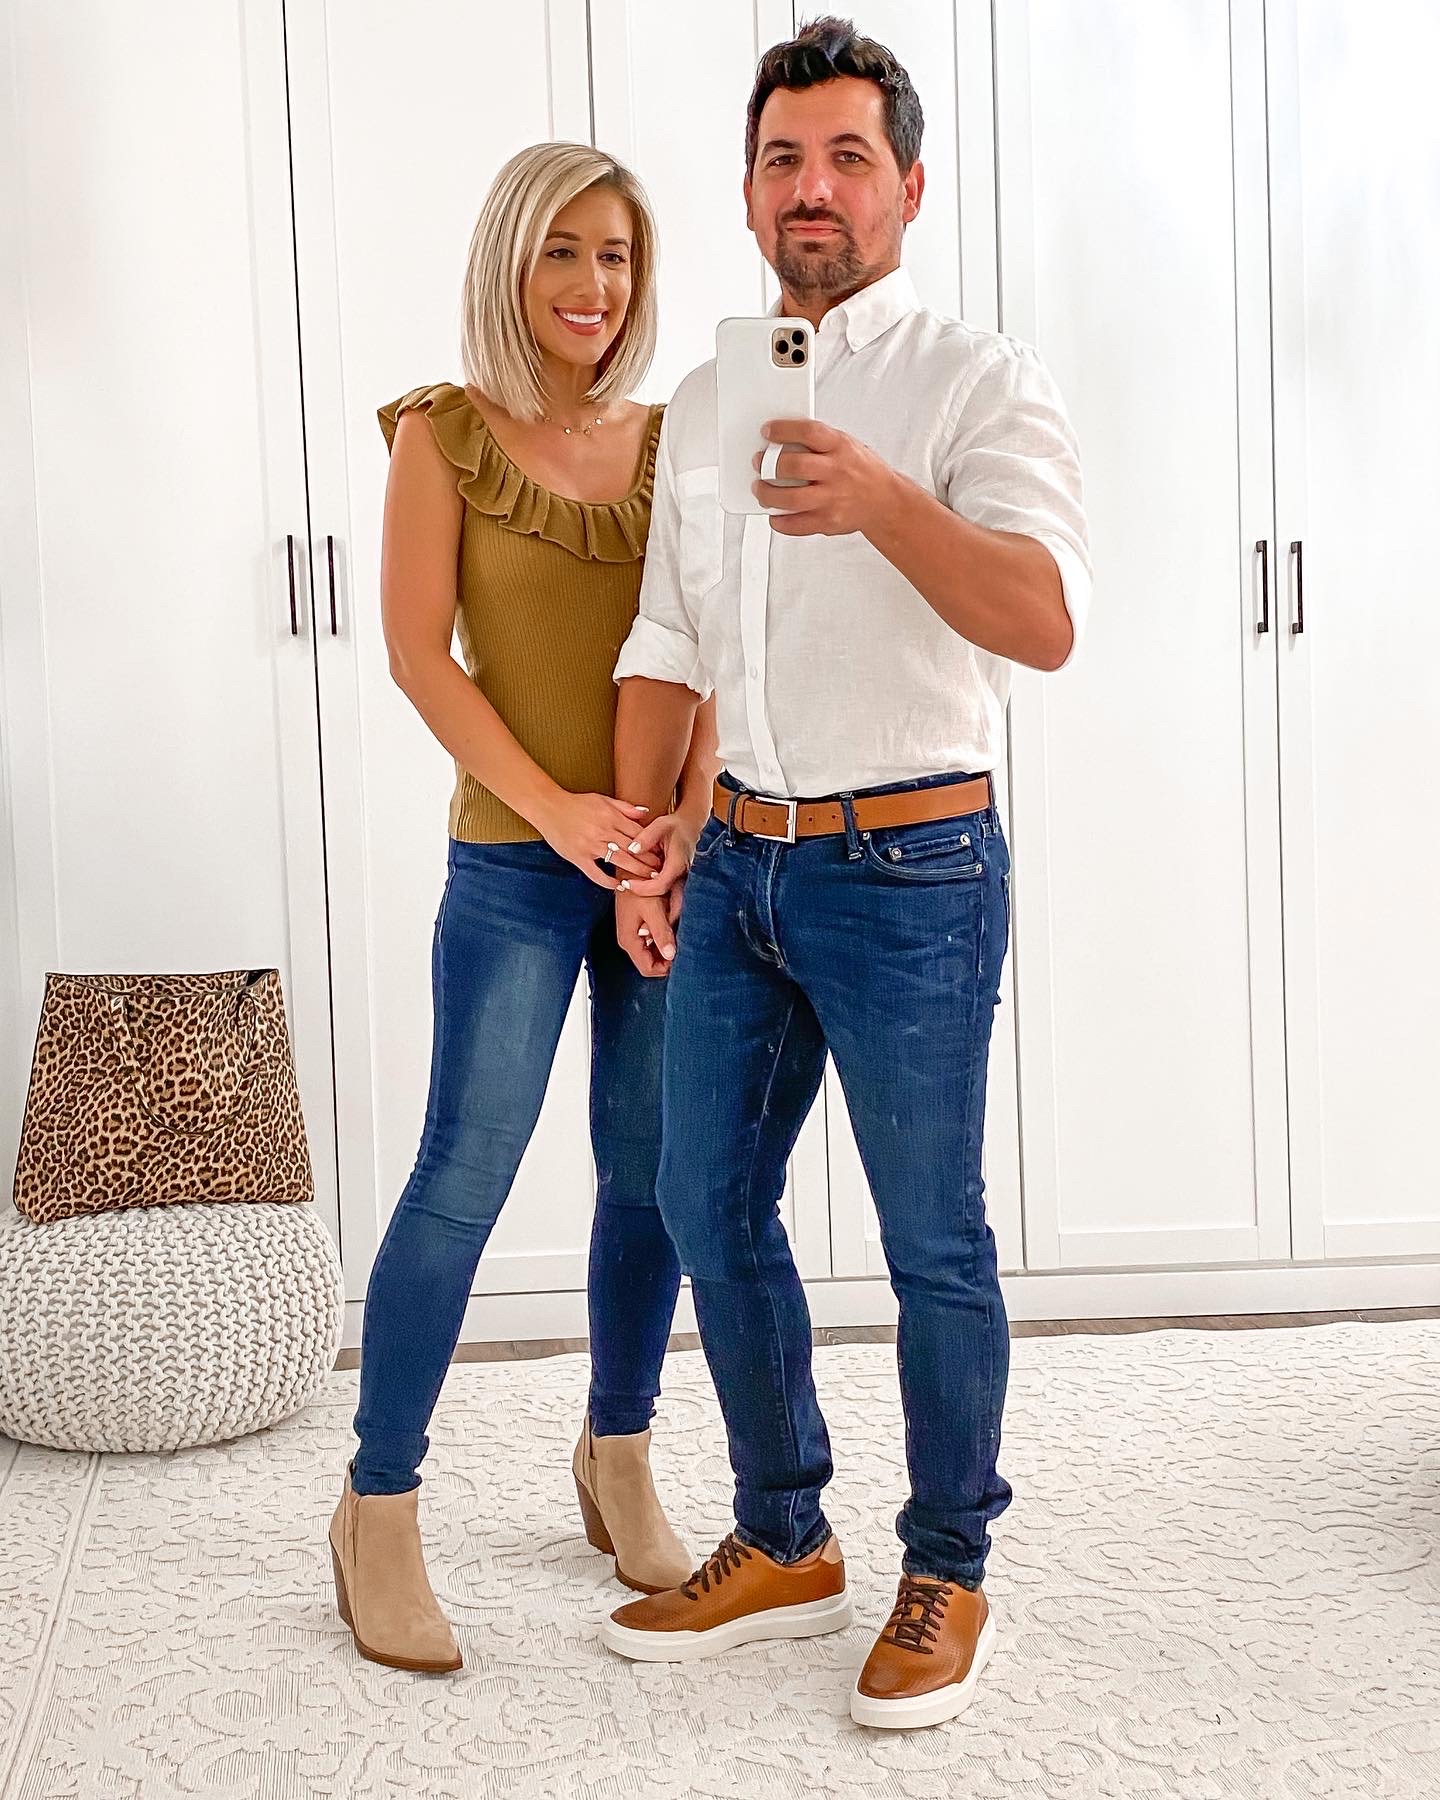 Casual HIS & HERS COUPLE Fall outfit Idea Laura Beverlin6